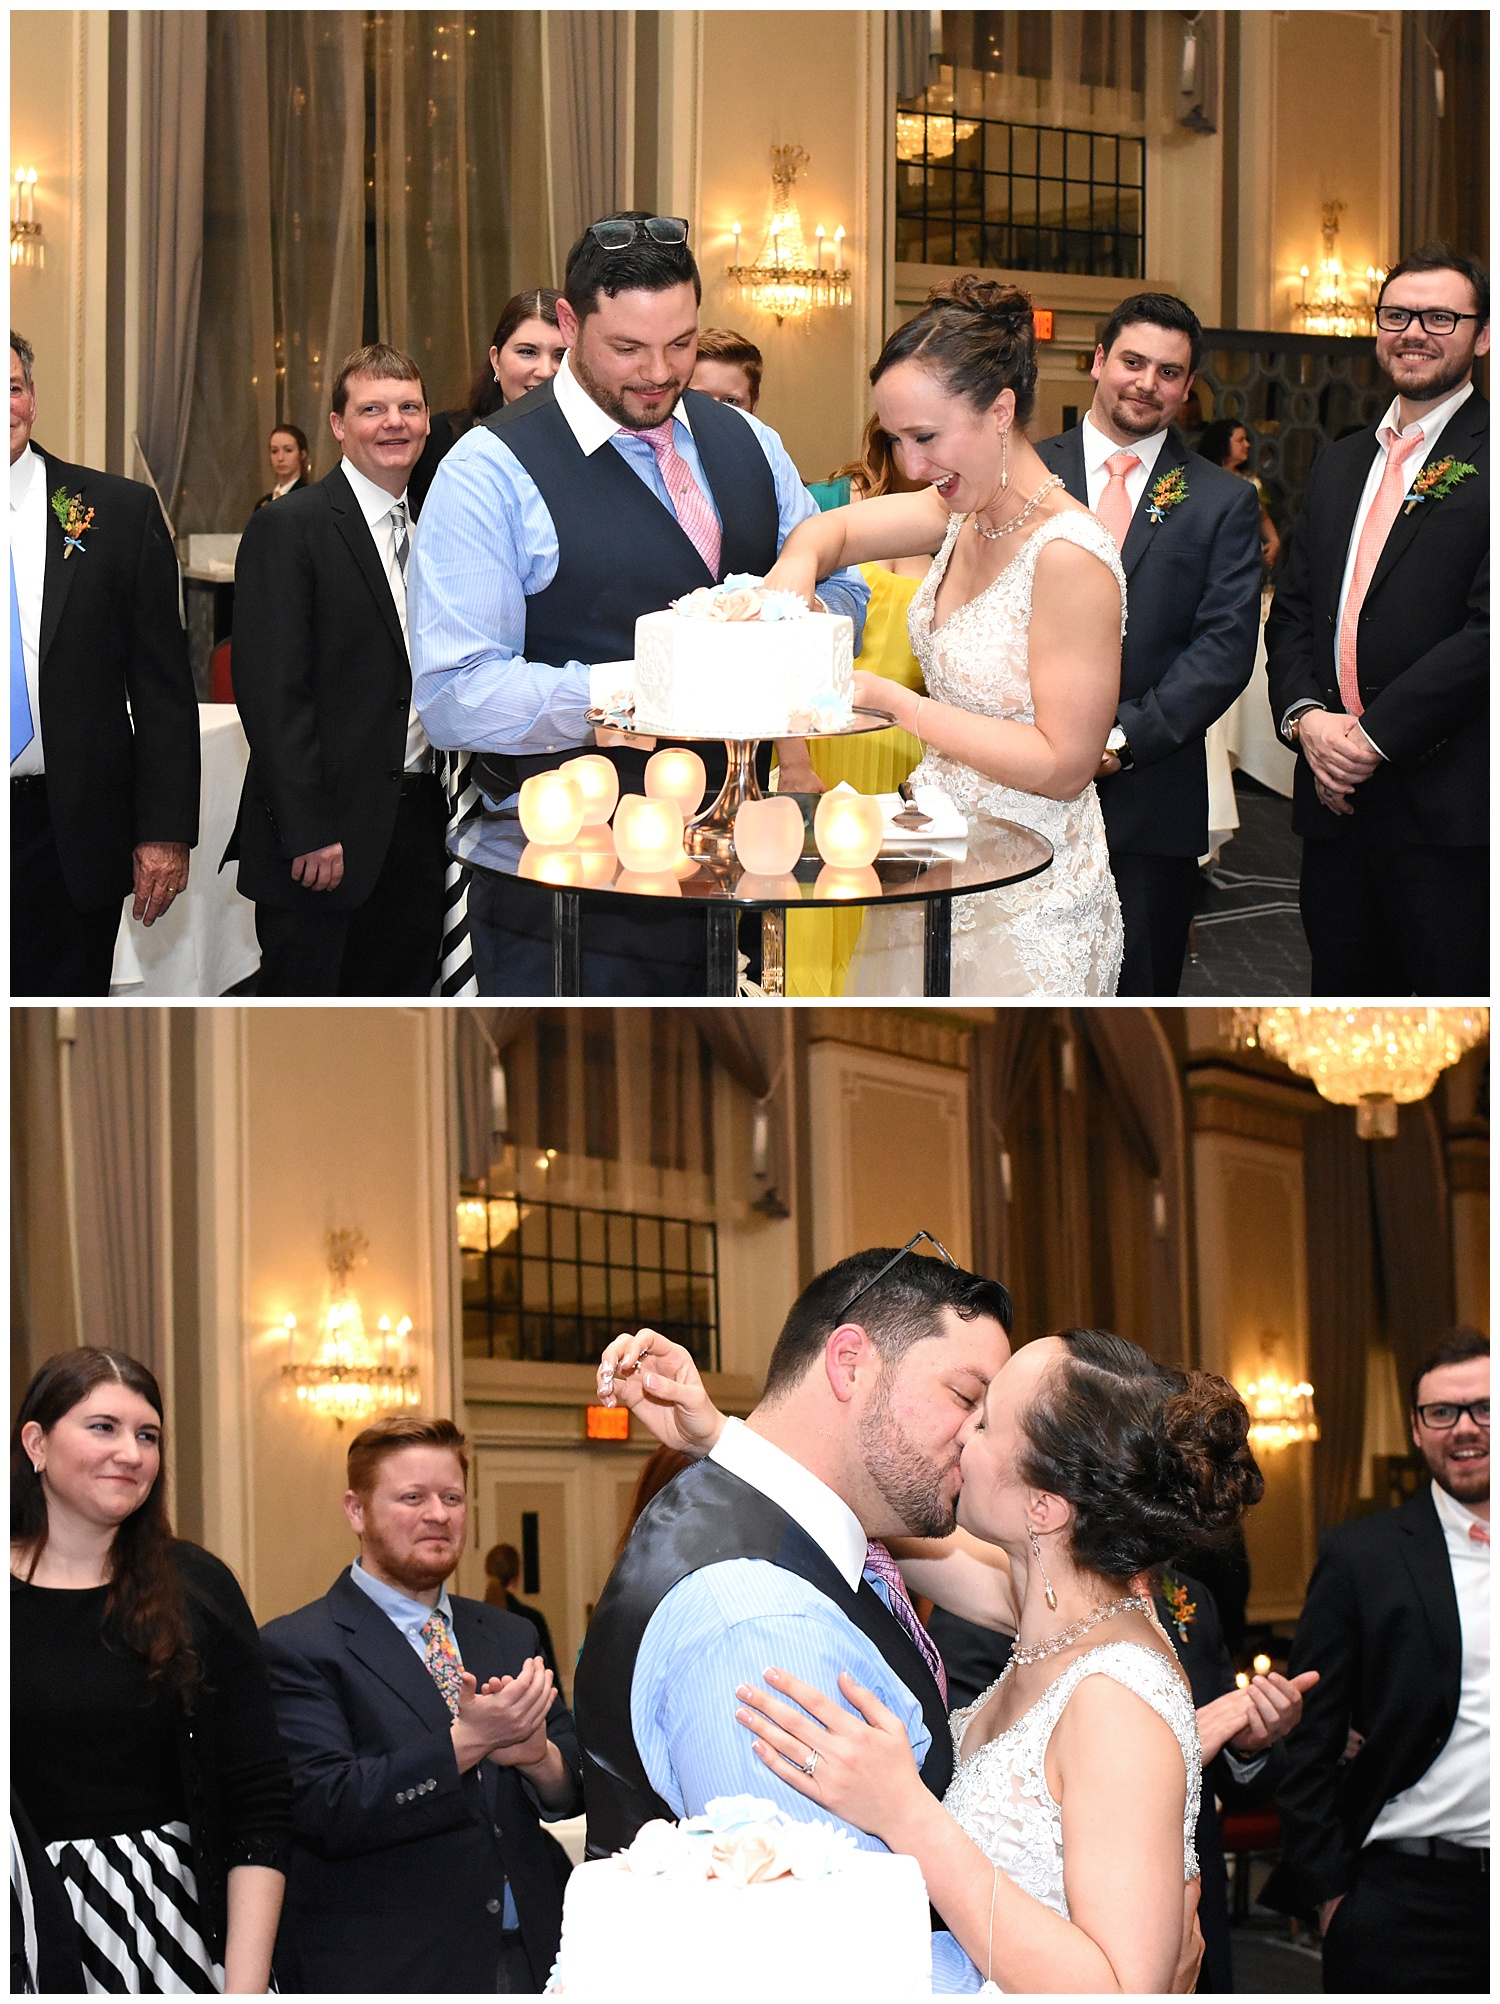 Bride and Groom Cake Cutting | Intimate Wedding Photographer | Chateau de Frontenac | Quebec City Wedding Photographer | Farm Wedding Photographer | Apollo Fields Wedding Photojournalism